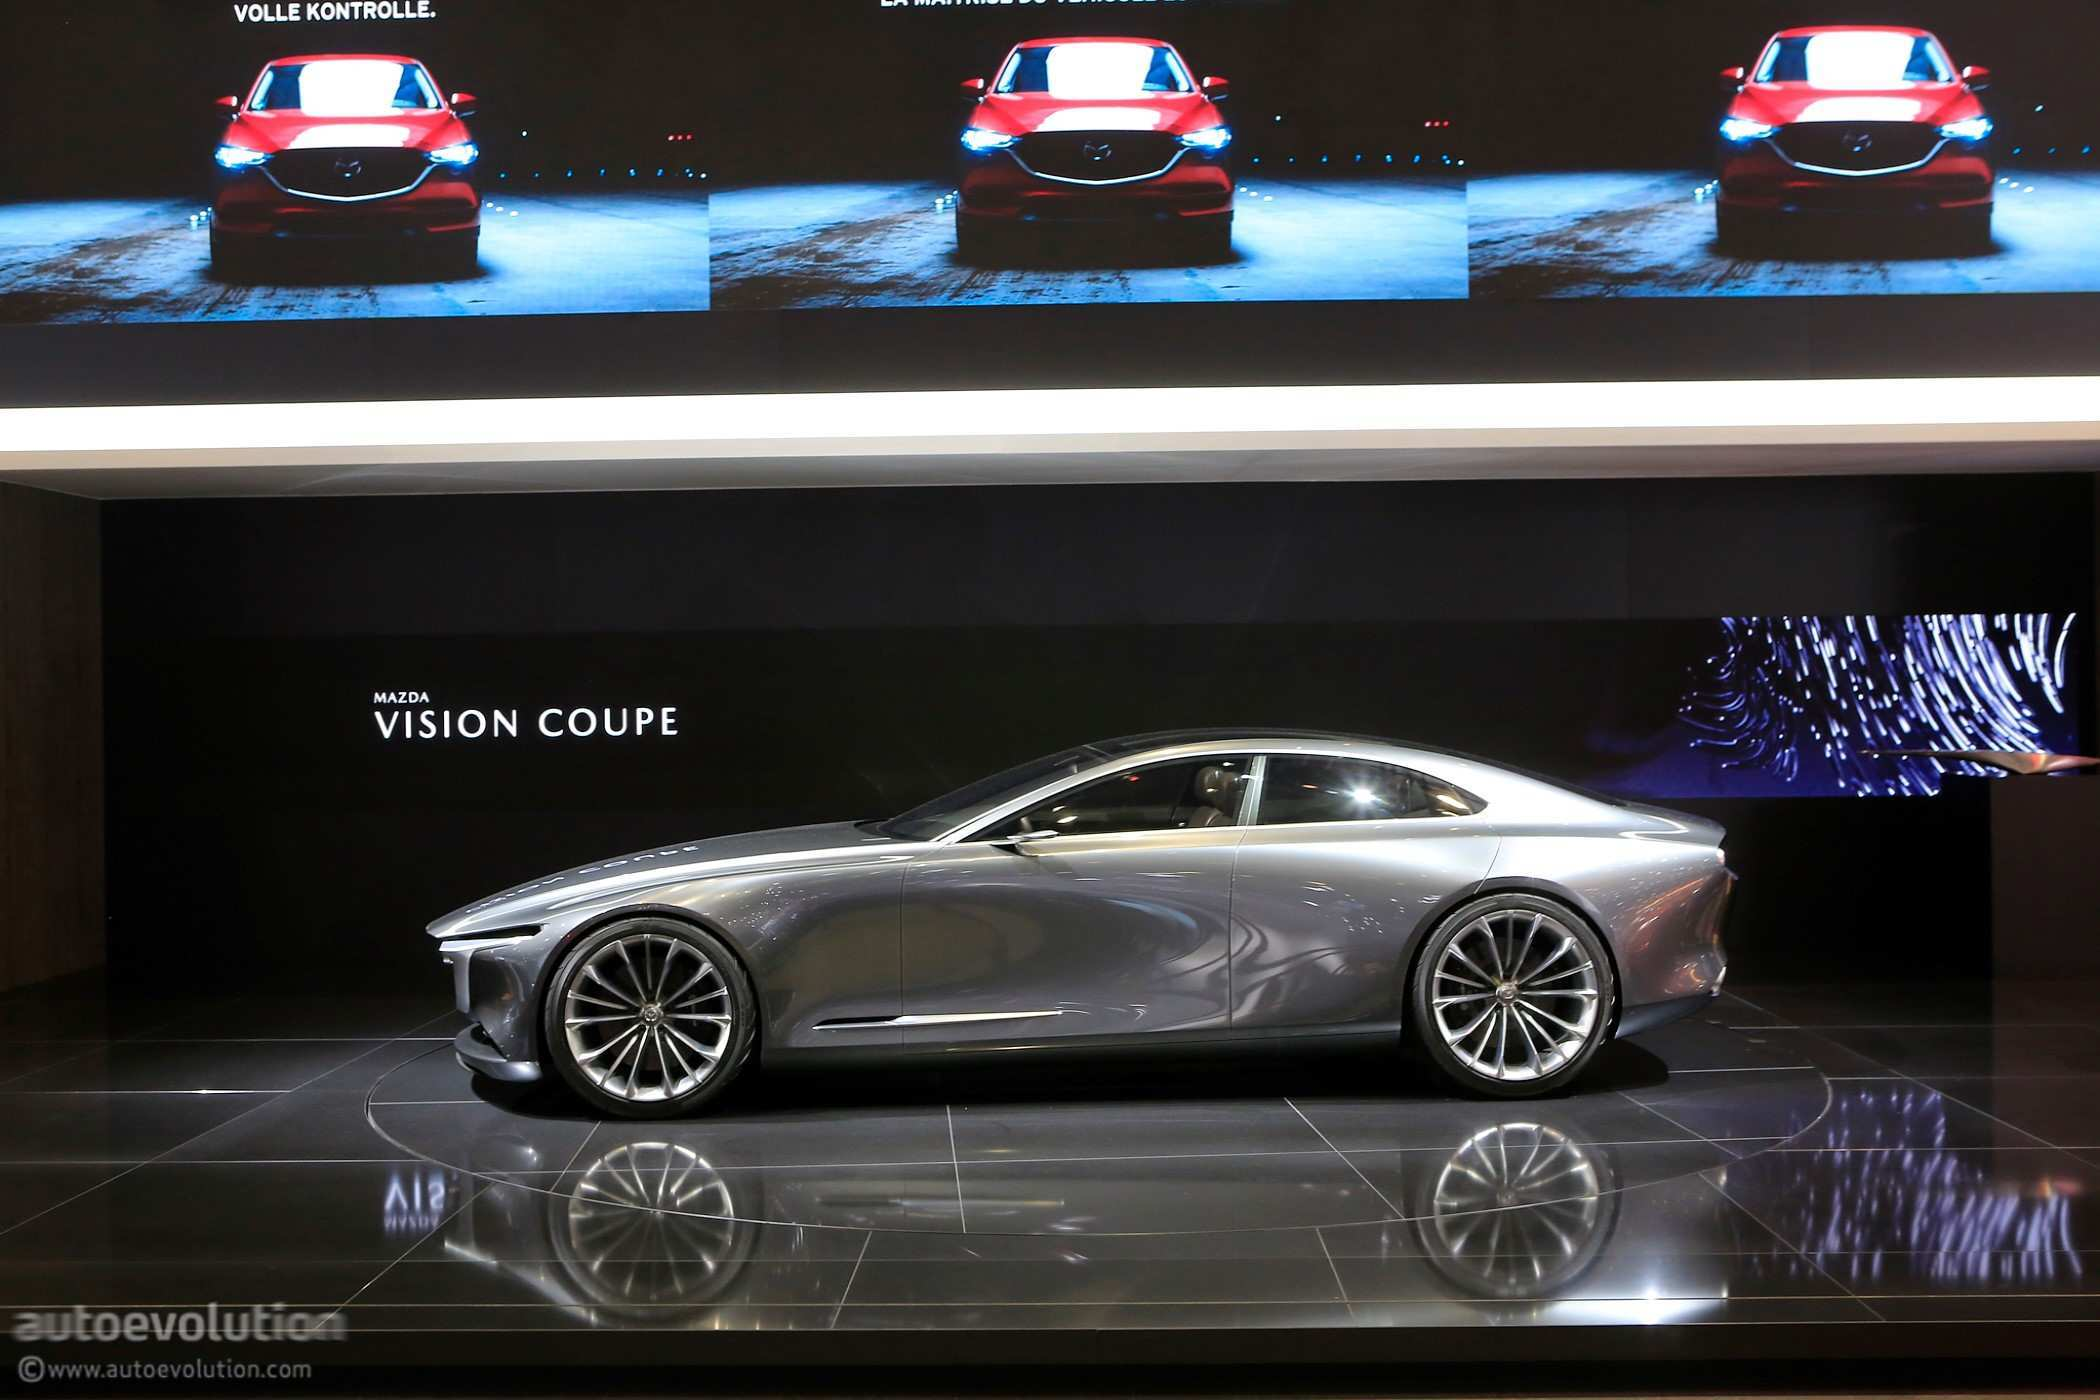 75 Best Mazda 6 Vision Coupe 2020 Price And Review